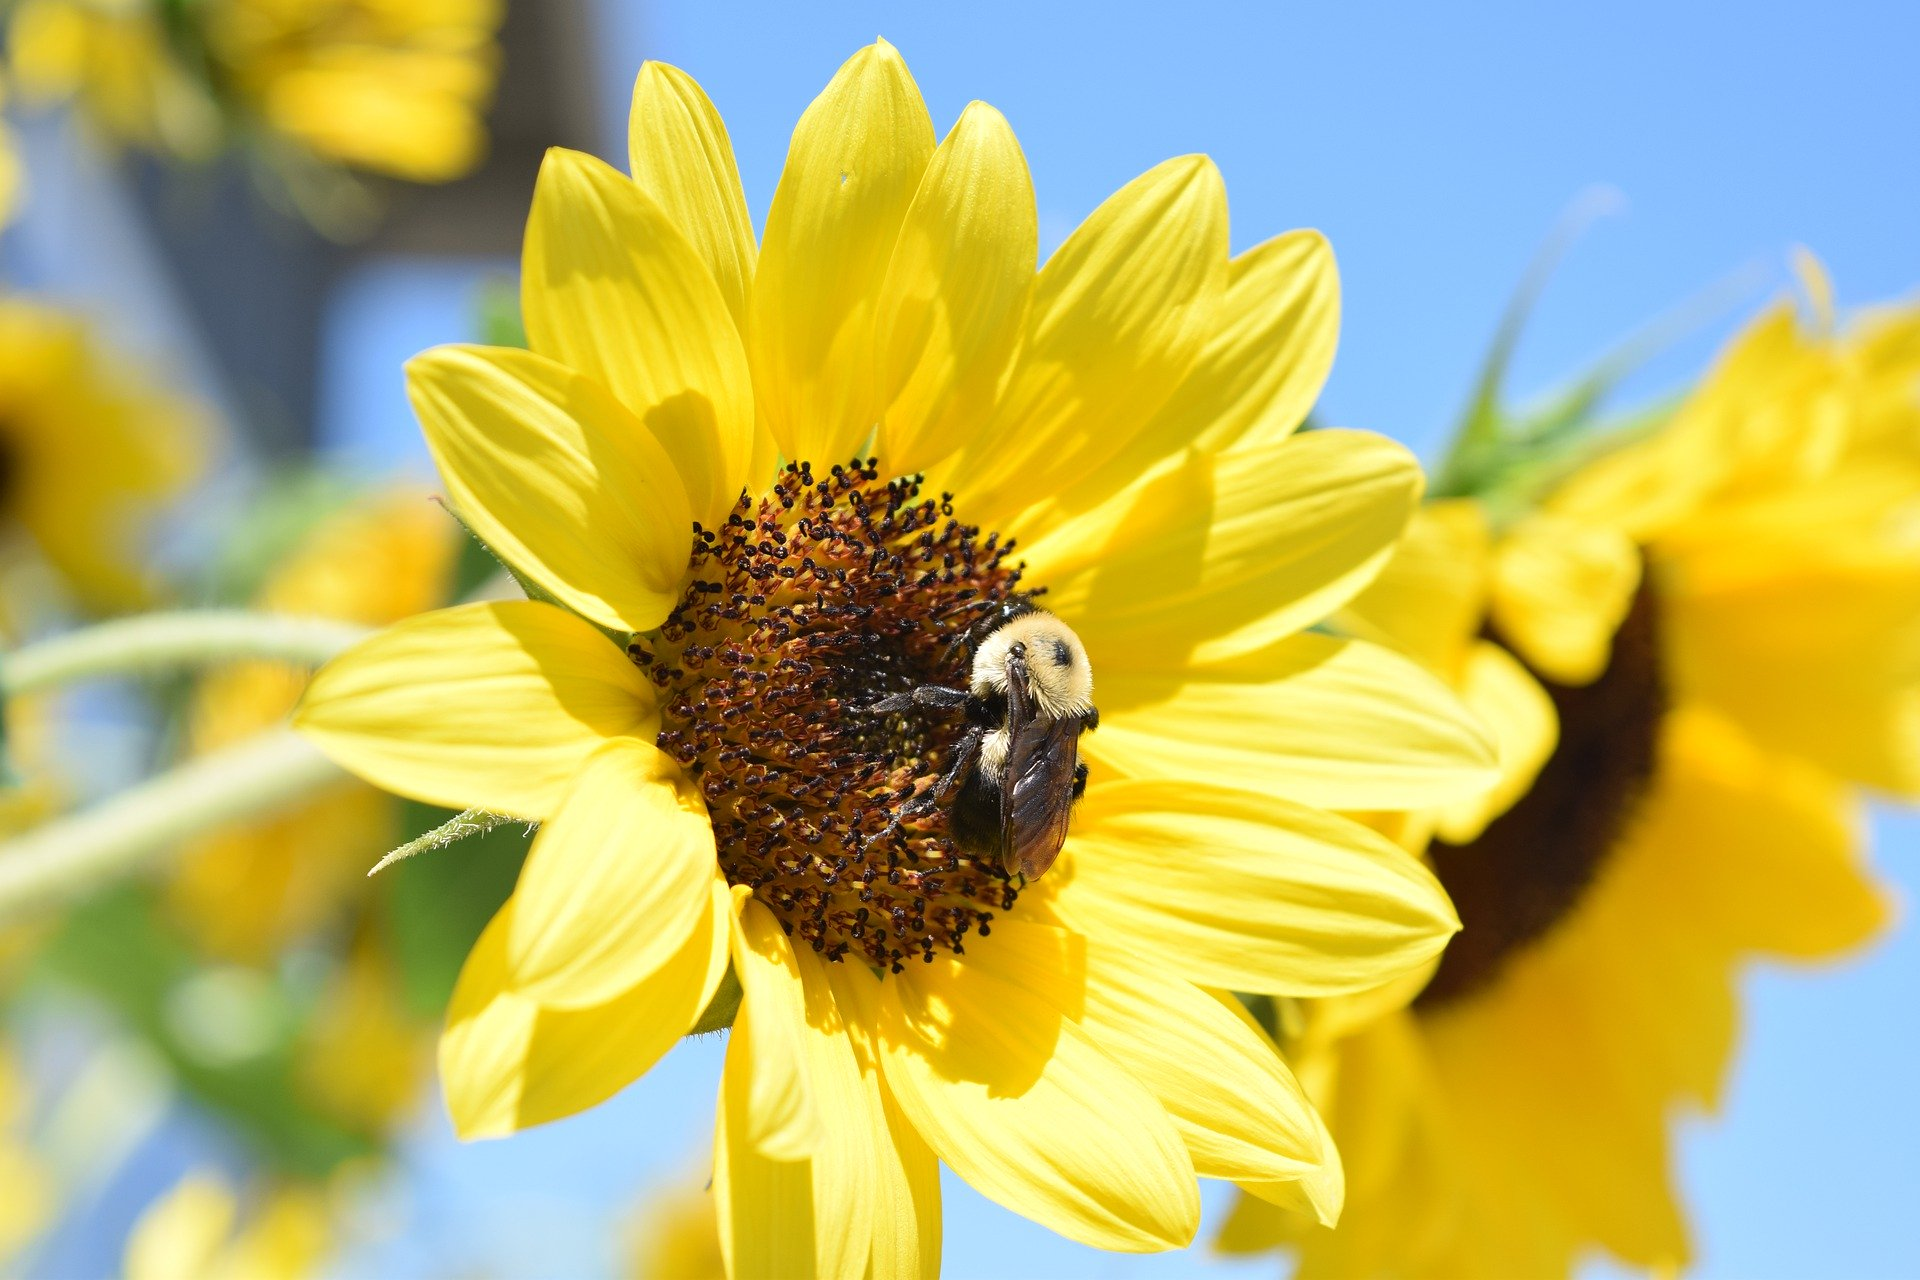 Bee with flower, by abarefootgal https://pixabay.com/photos/yellow-sunflower-sunshine-summer-5223420/